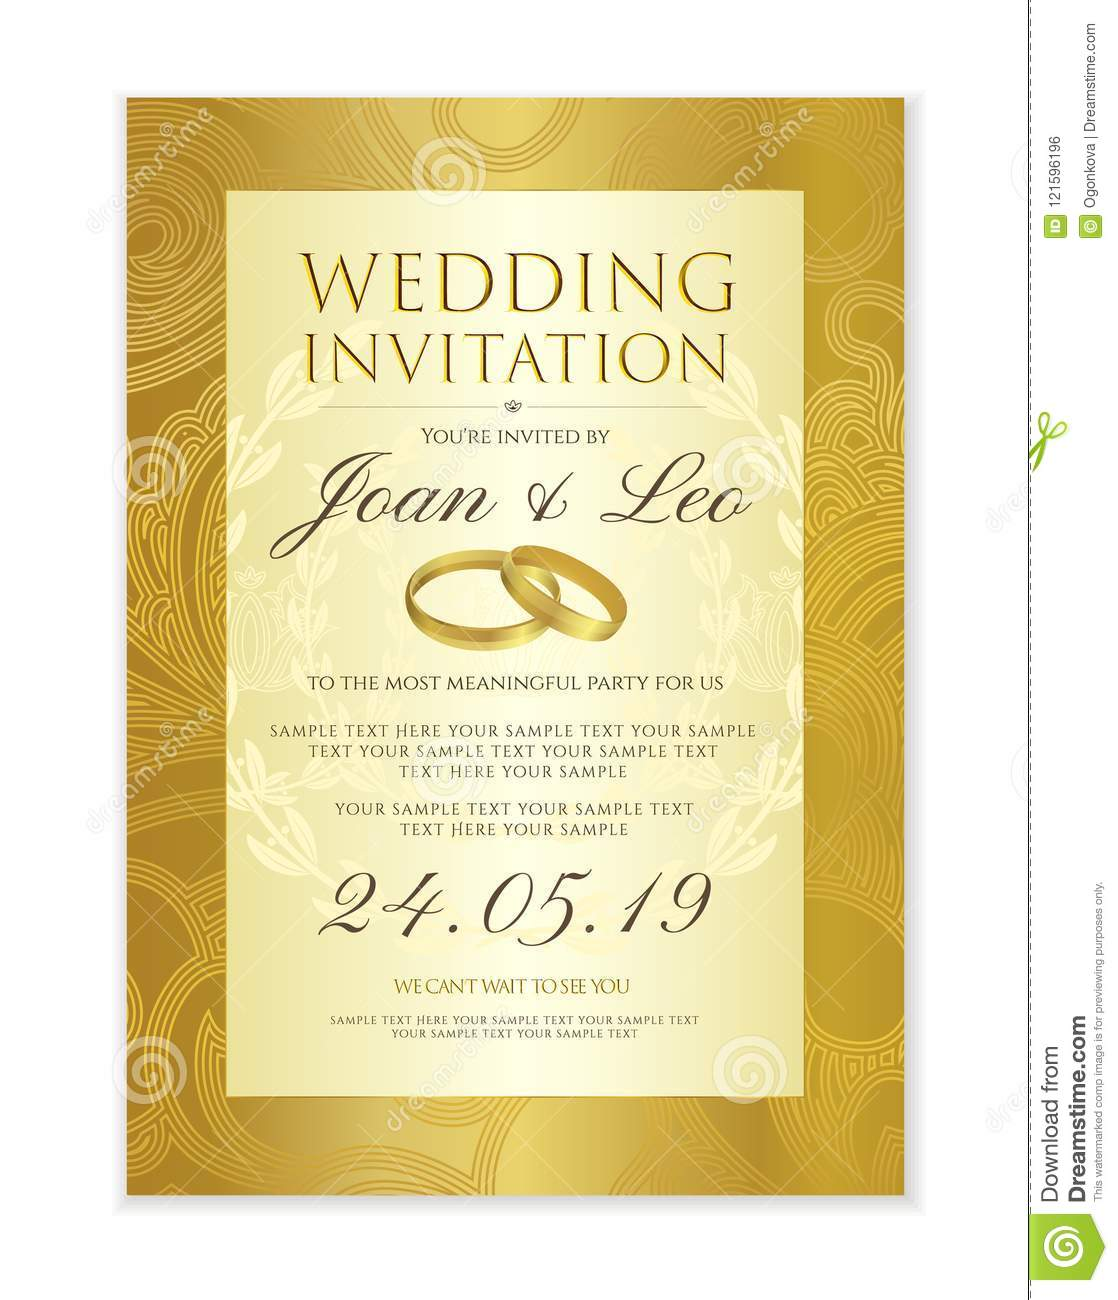 Golden Save The Date For Wedding Invitation Wedding